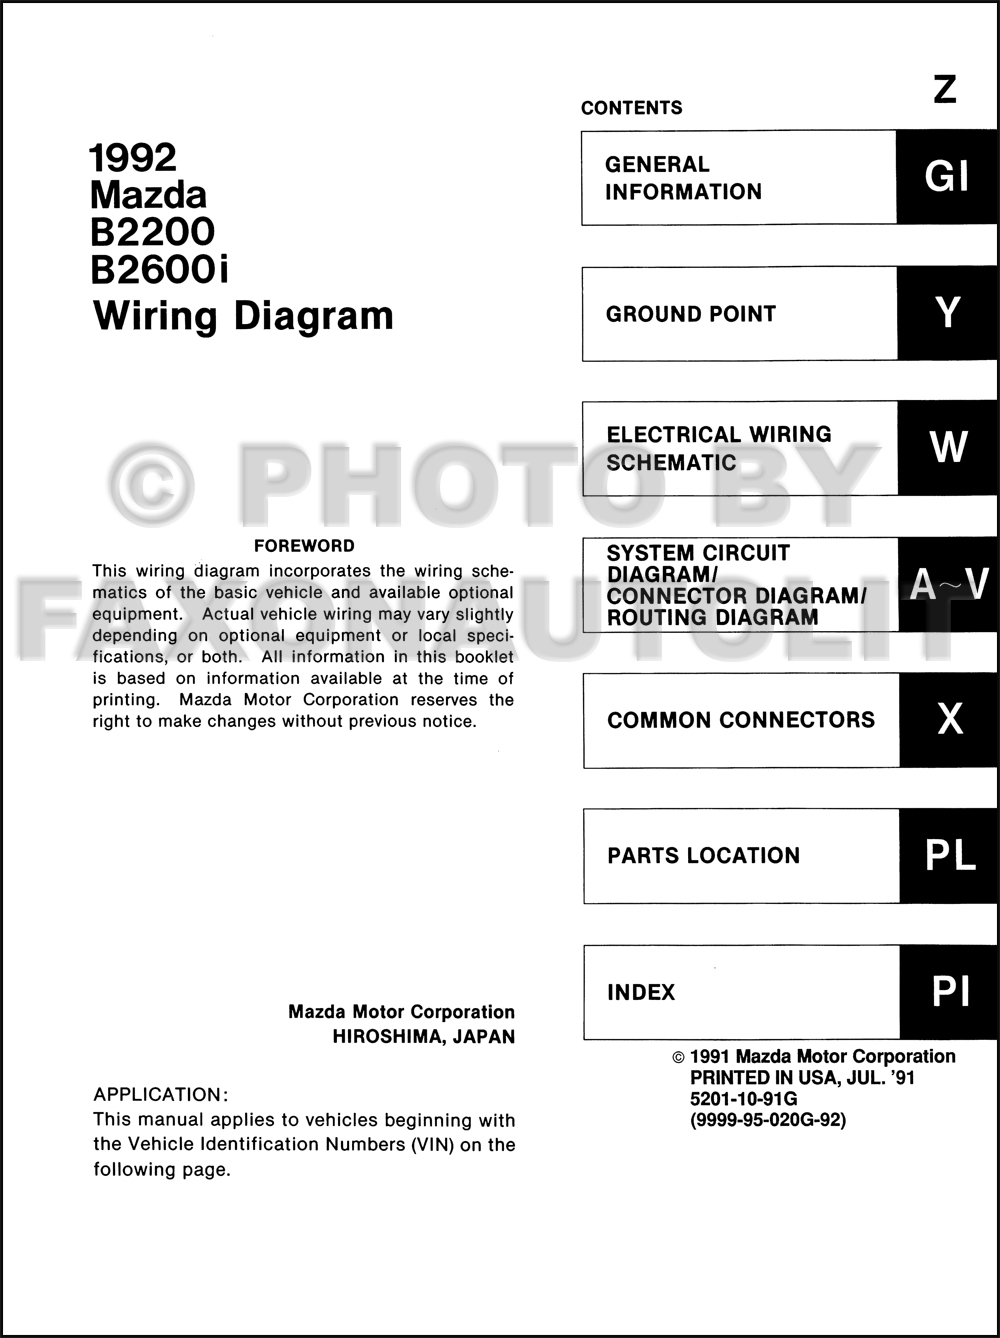 1992 mazda b2200 b2600i pickup truck wiring diagram manual original rh faxonautoliterature com 1992 mazda b2200 alternator wiring diagram 1990 mazda b2200 stereo wiring diagram